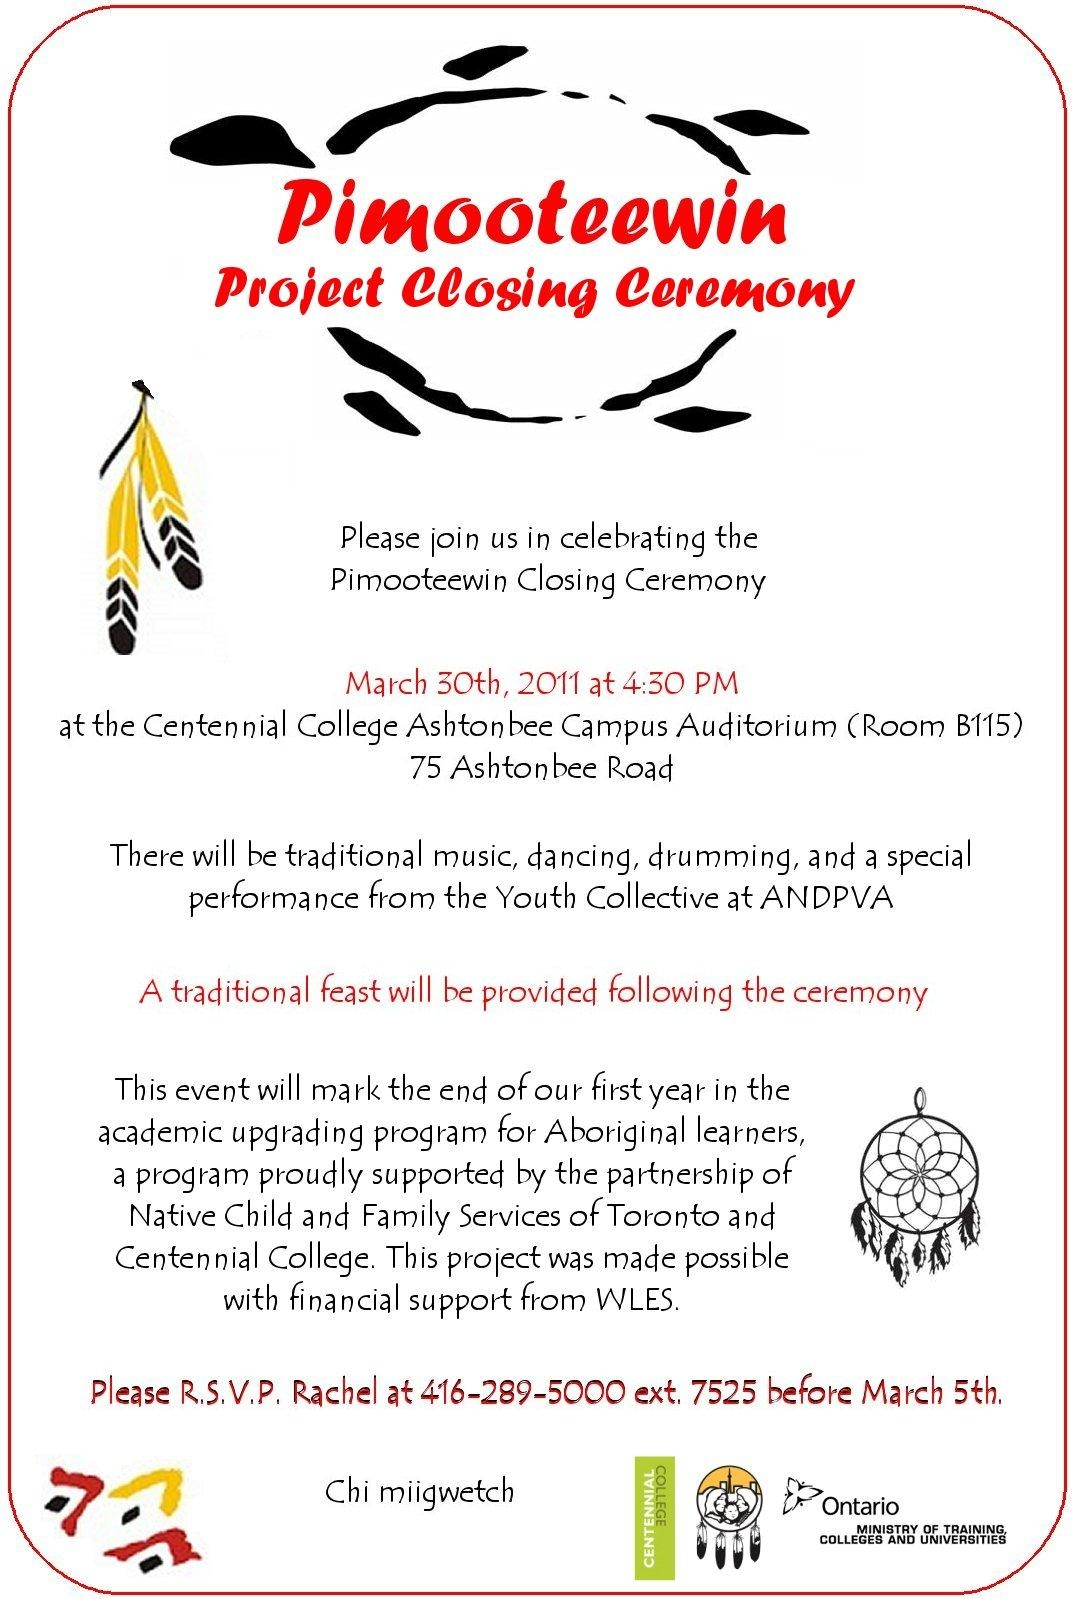 Pimooteewin program centennial college invitation to the closing pimooteewin program centennial college stopboris Image collections